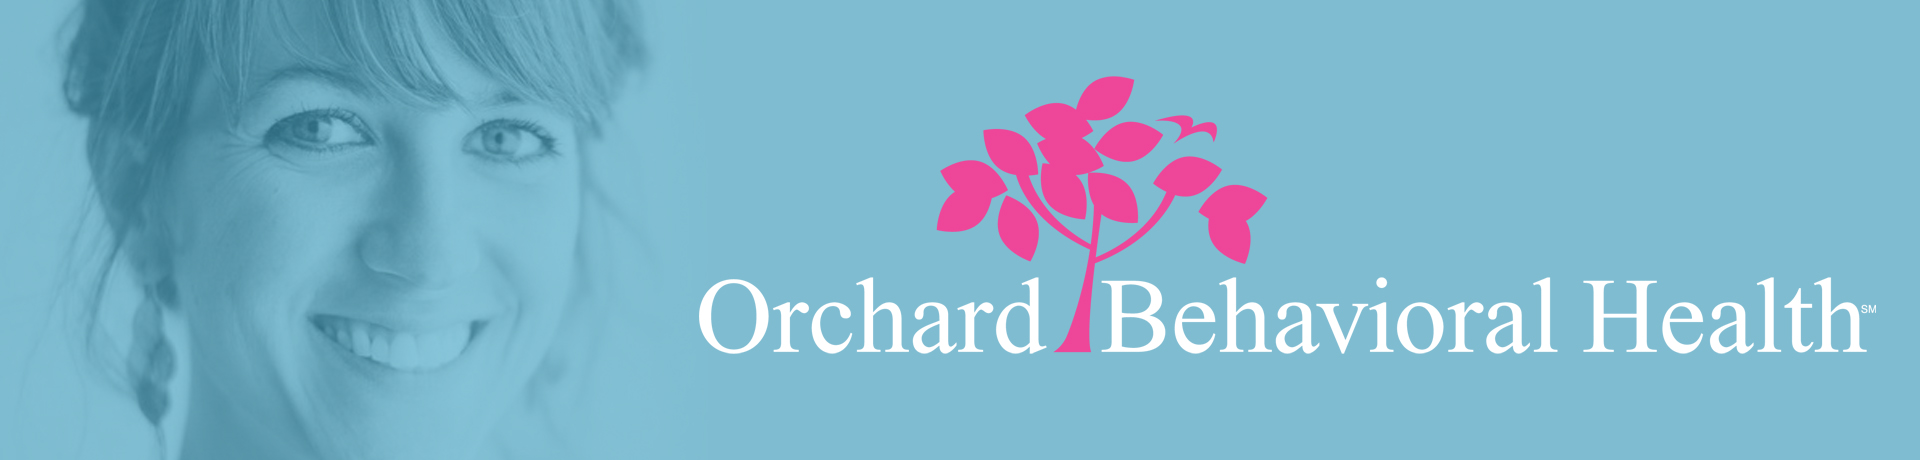 Orchard Behavioral Health  Kidspeace. Ramona High School Riverside Ca. New York Colleges For Criminal Justice. Credit Cards With Rewards For Gas. Computer Home Automation Att Referral Program. Cheap Nightclubs In Las Vegas. Occupational Therapy Schools In Wisconsin. Corporation Or Sole Proprietorship. Criminal Attorney Miami Electrician Las Vegas